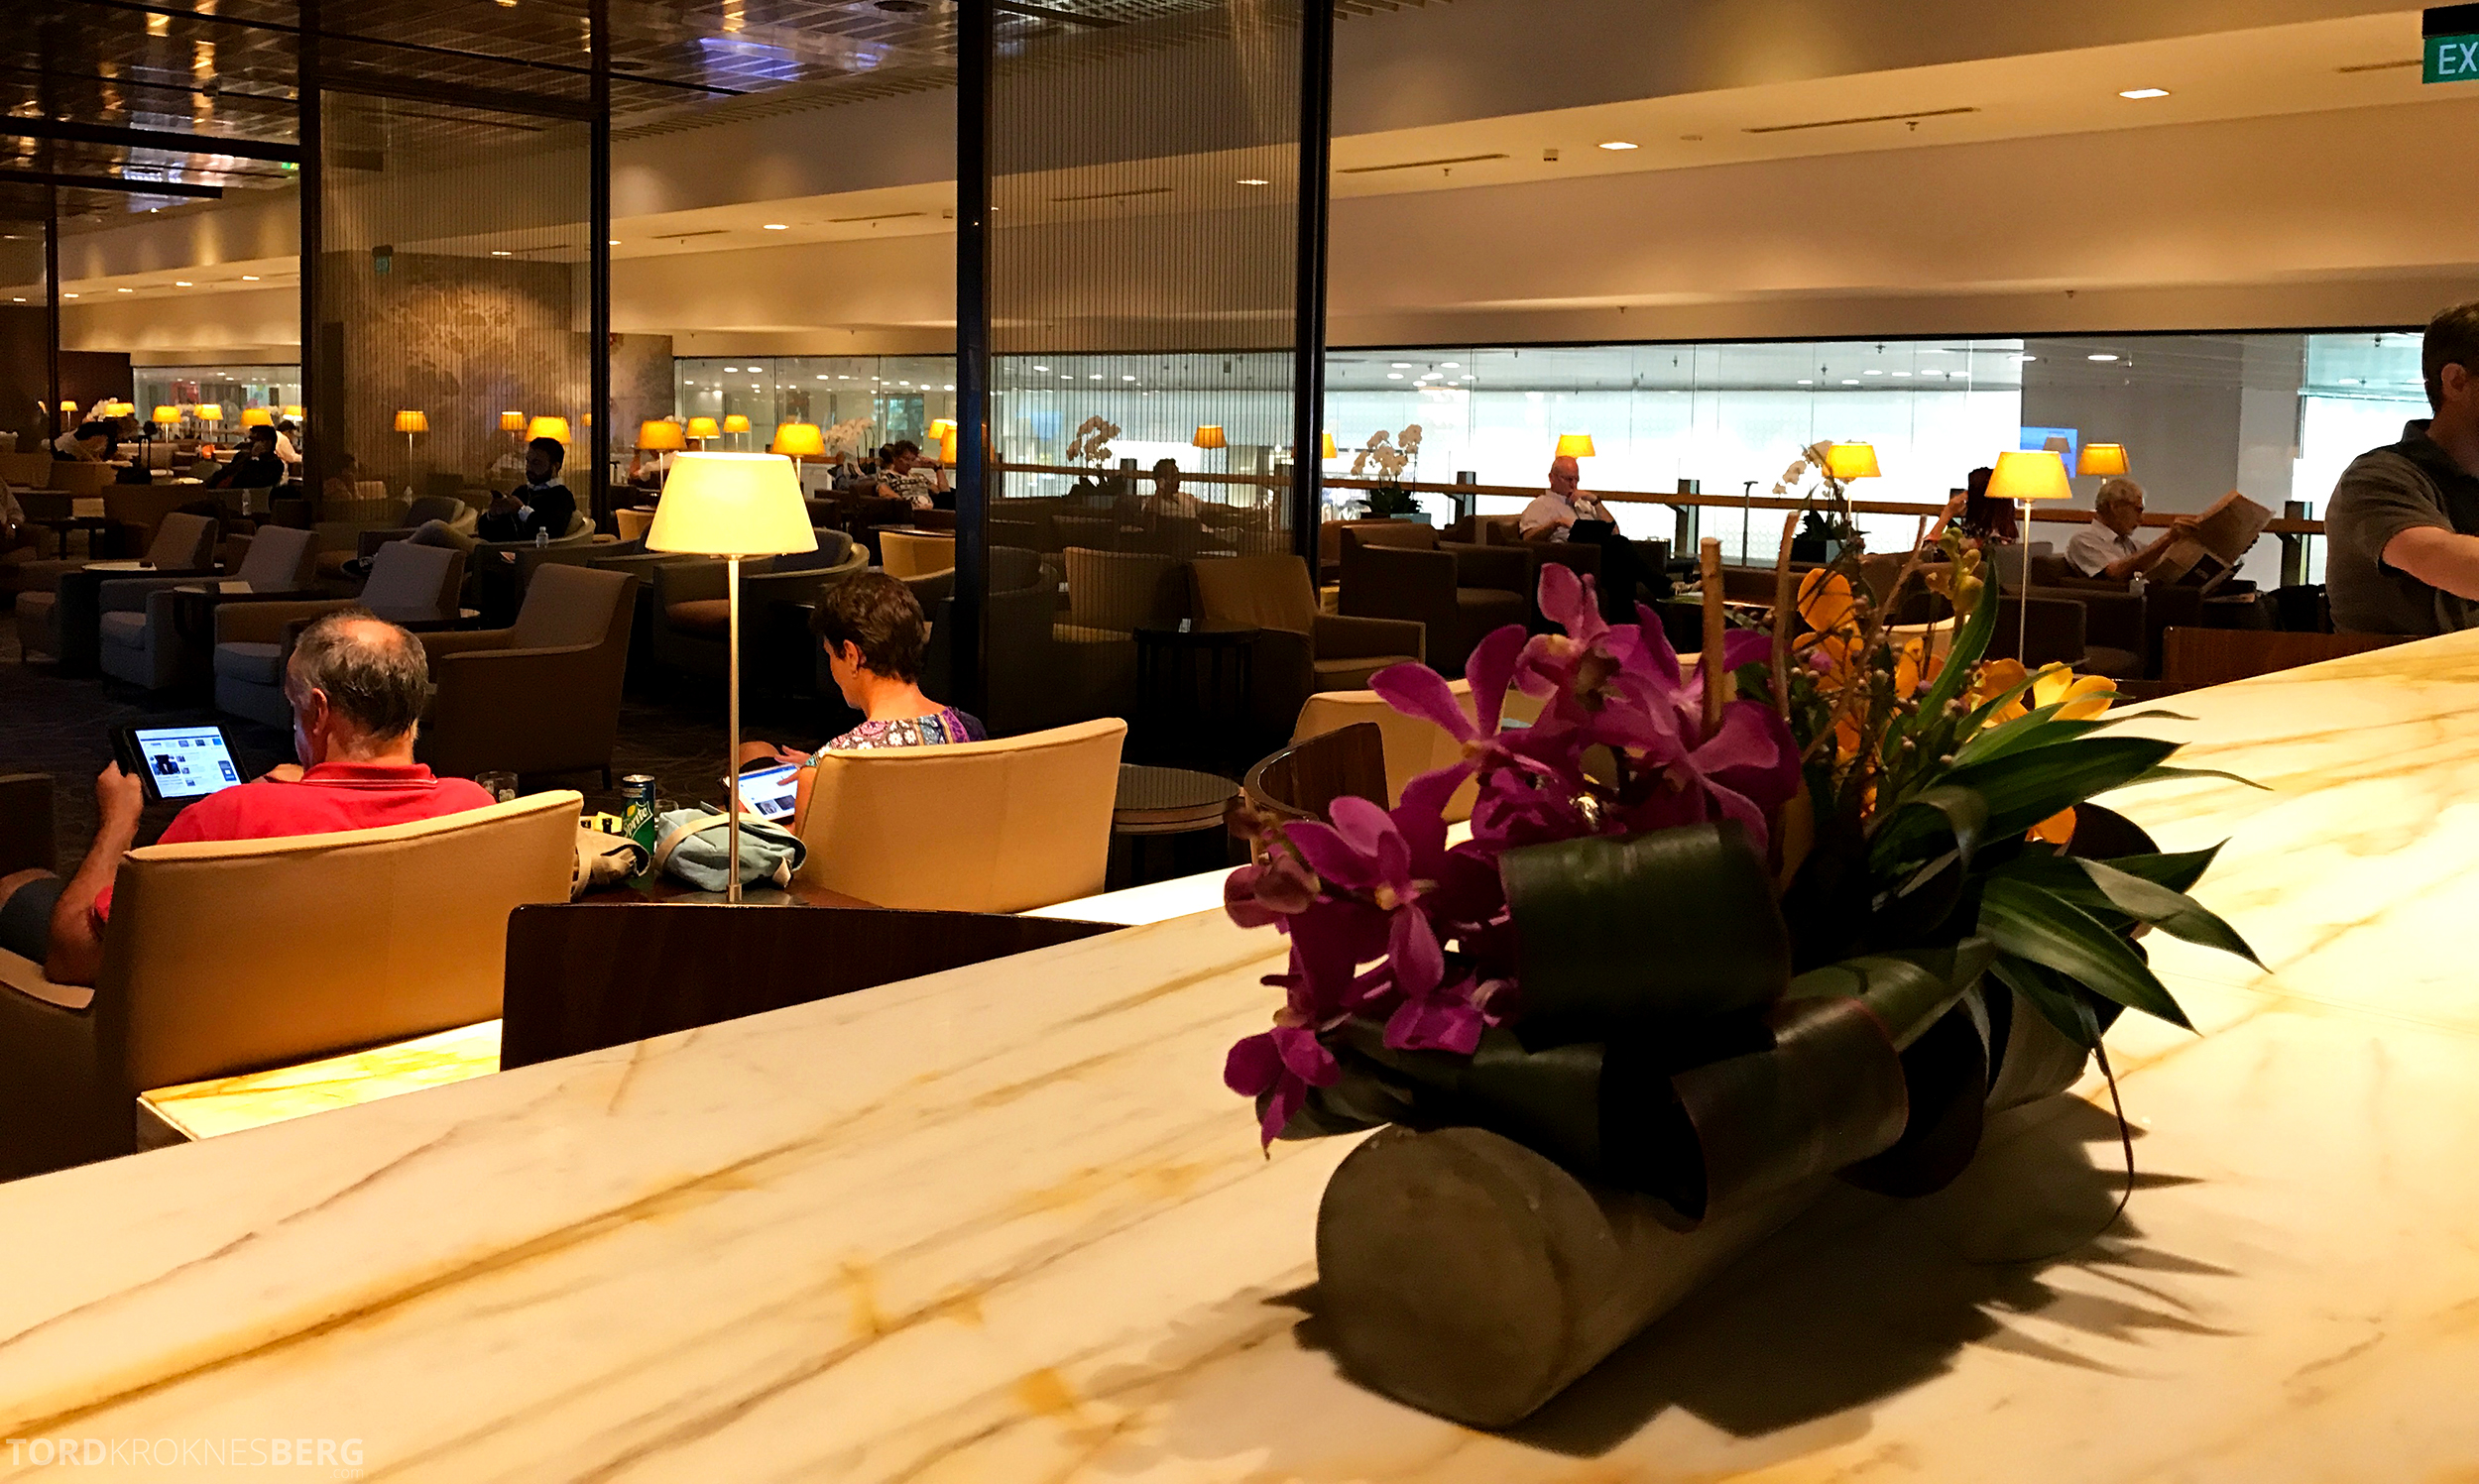 Singapore Airlines SilverKris Lounge detaljer